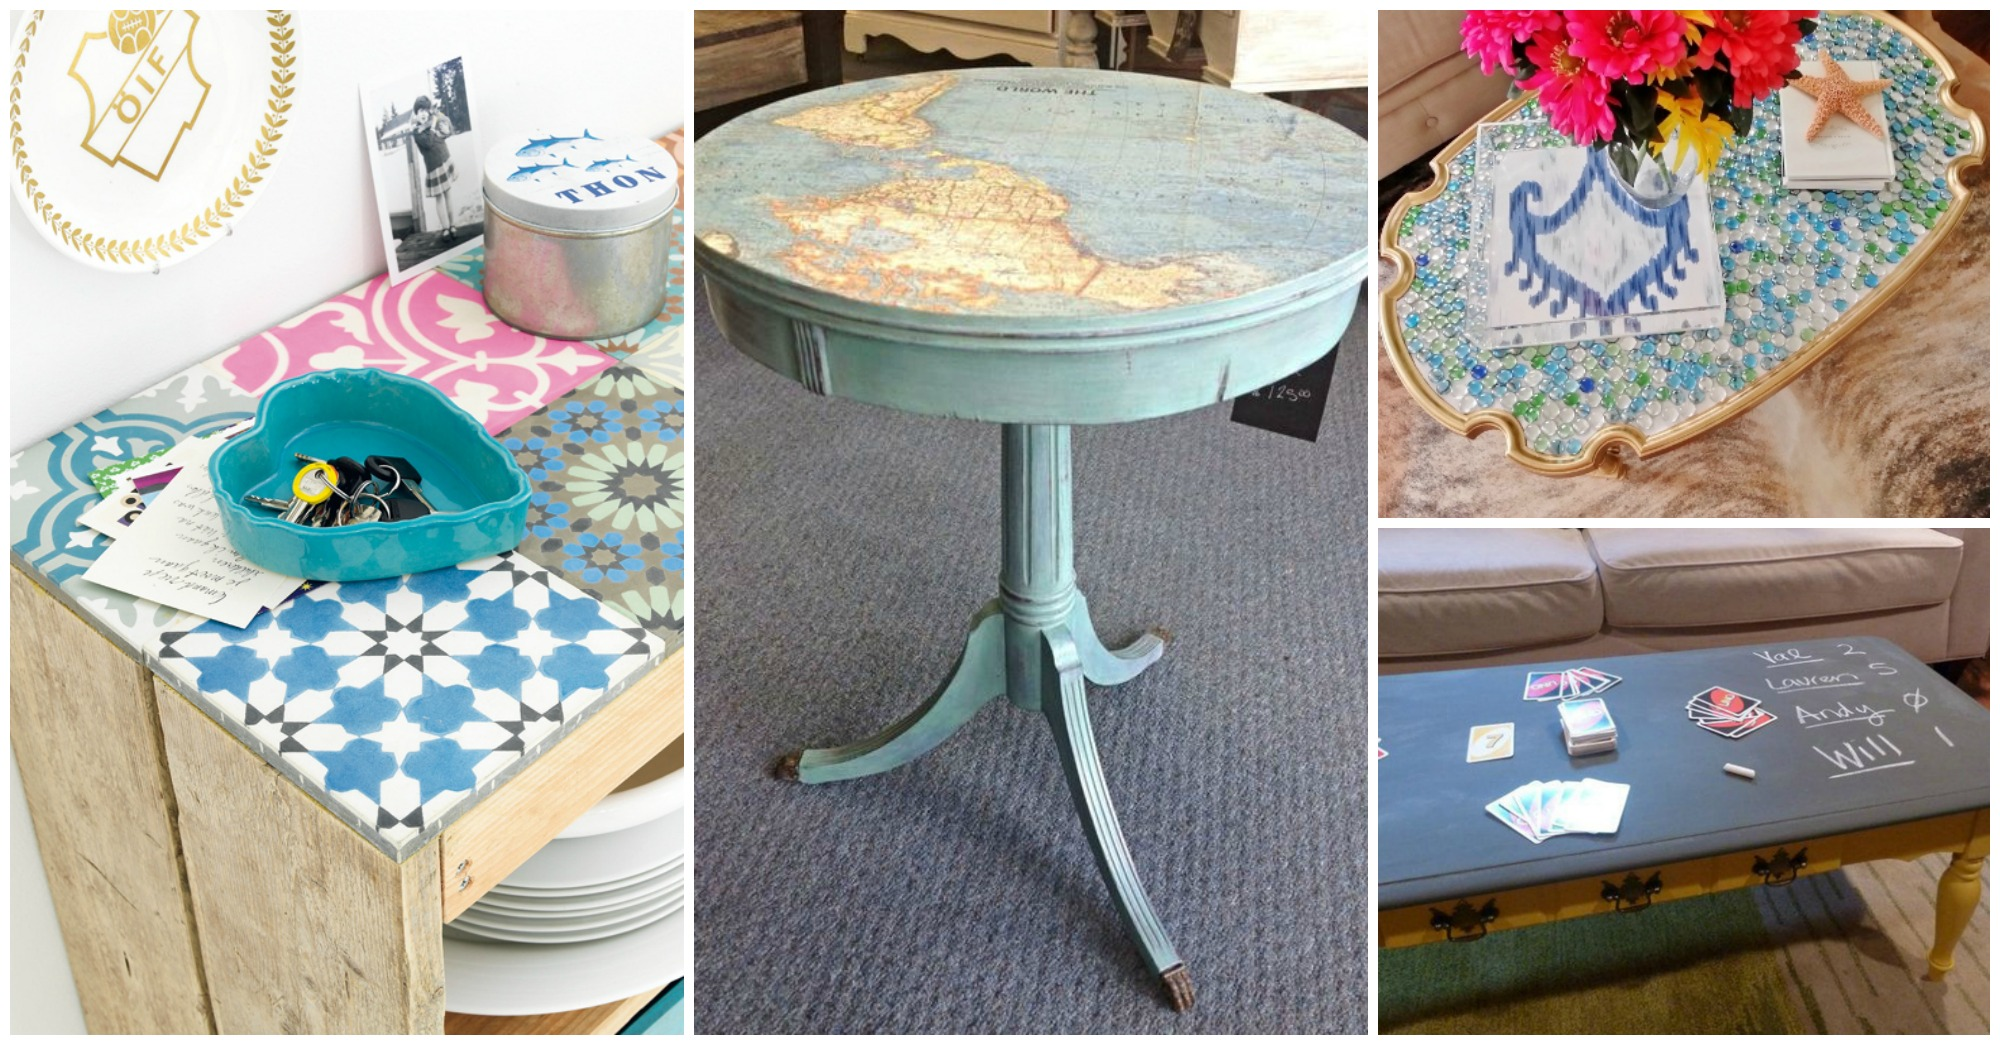 12 Low-Cost DIY Coffee Table Ideas to Make Right Now